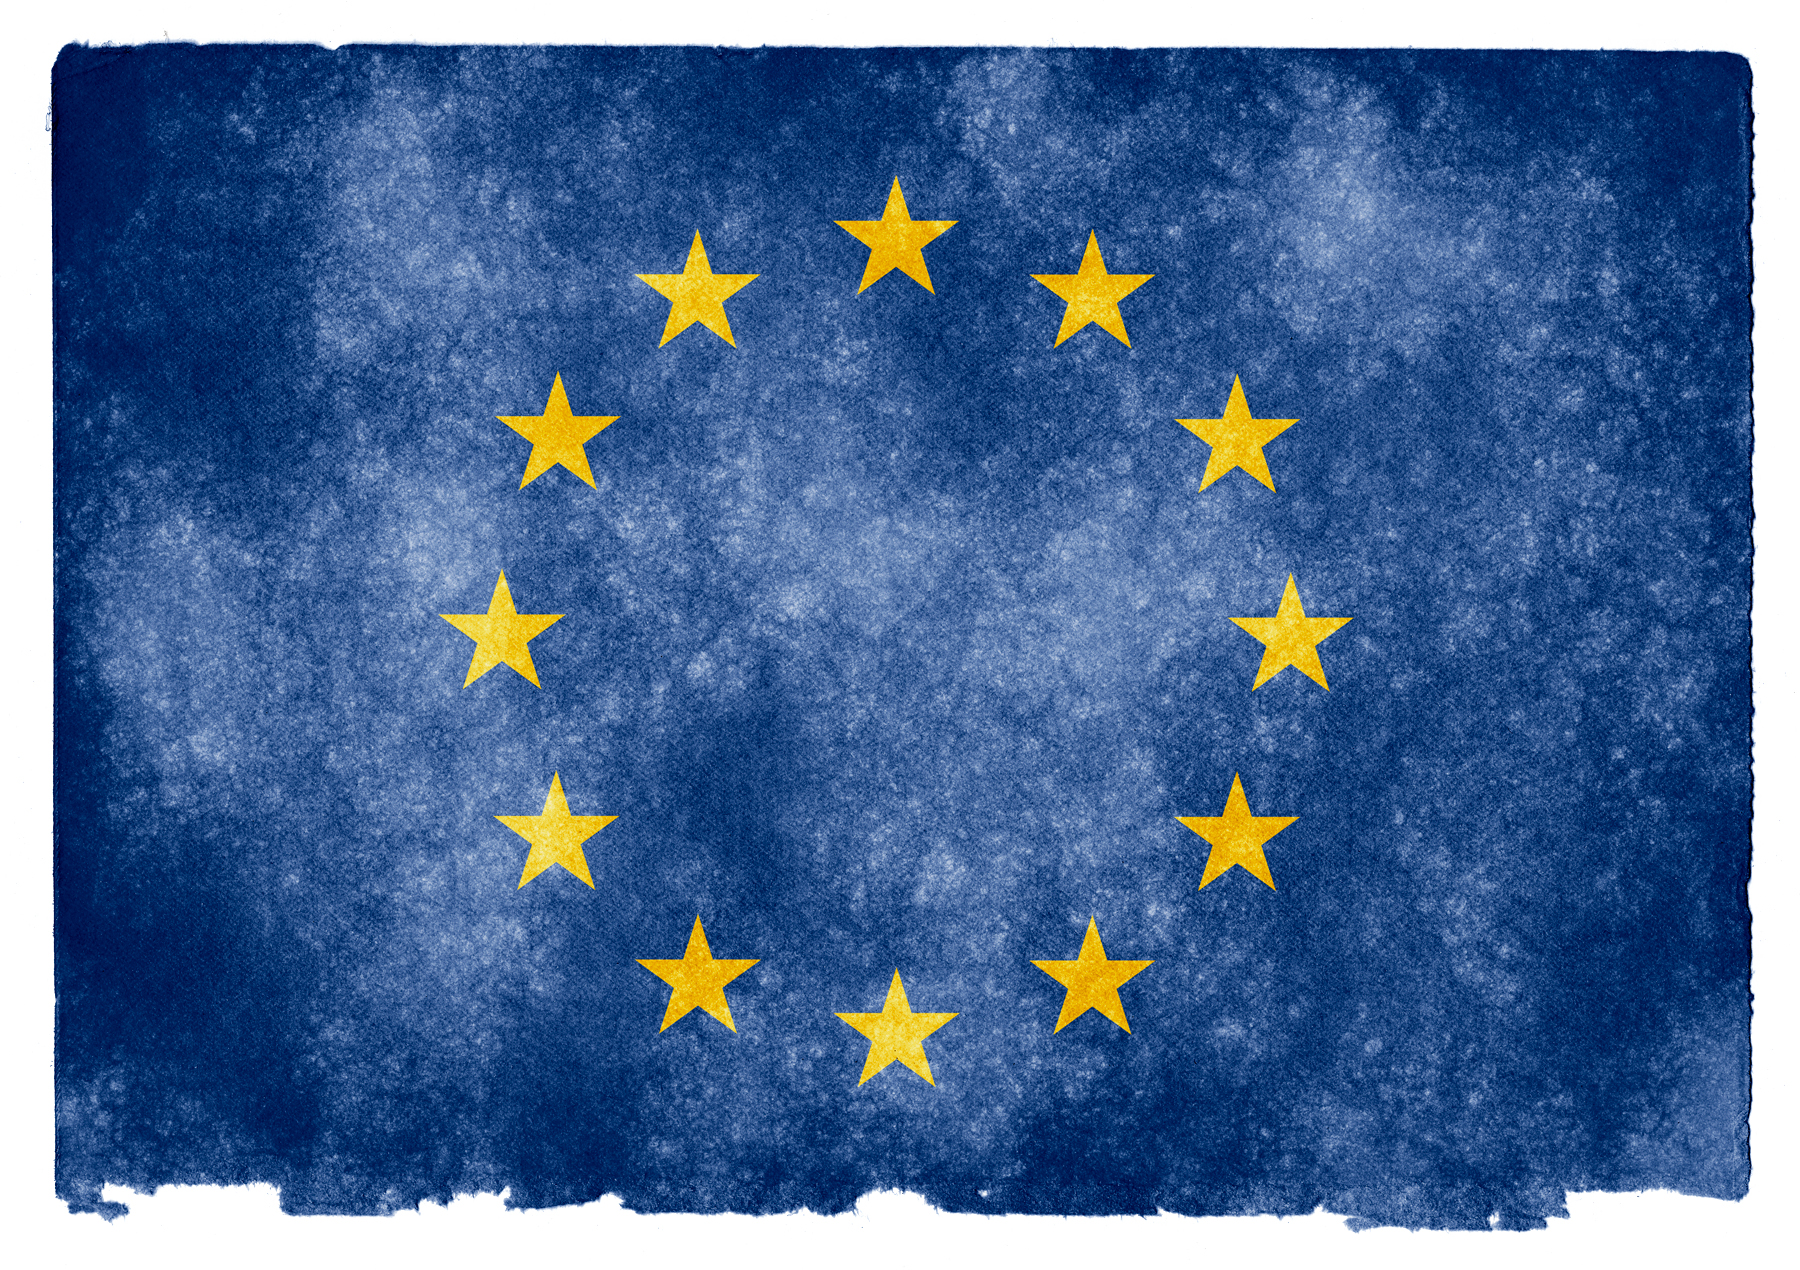 The European Union: We are witnessing the end of the empire